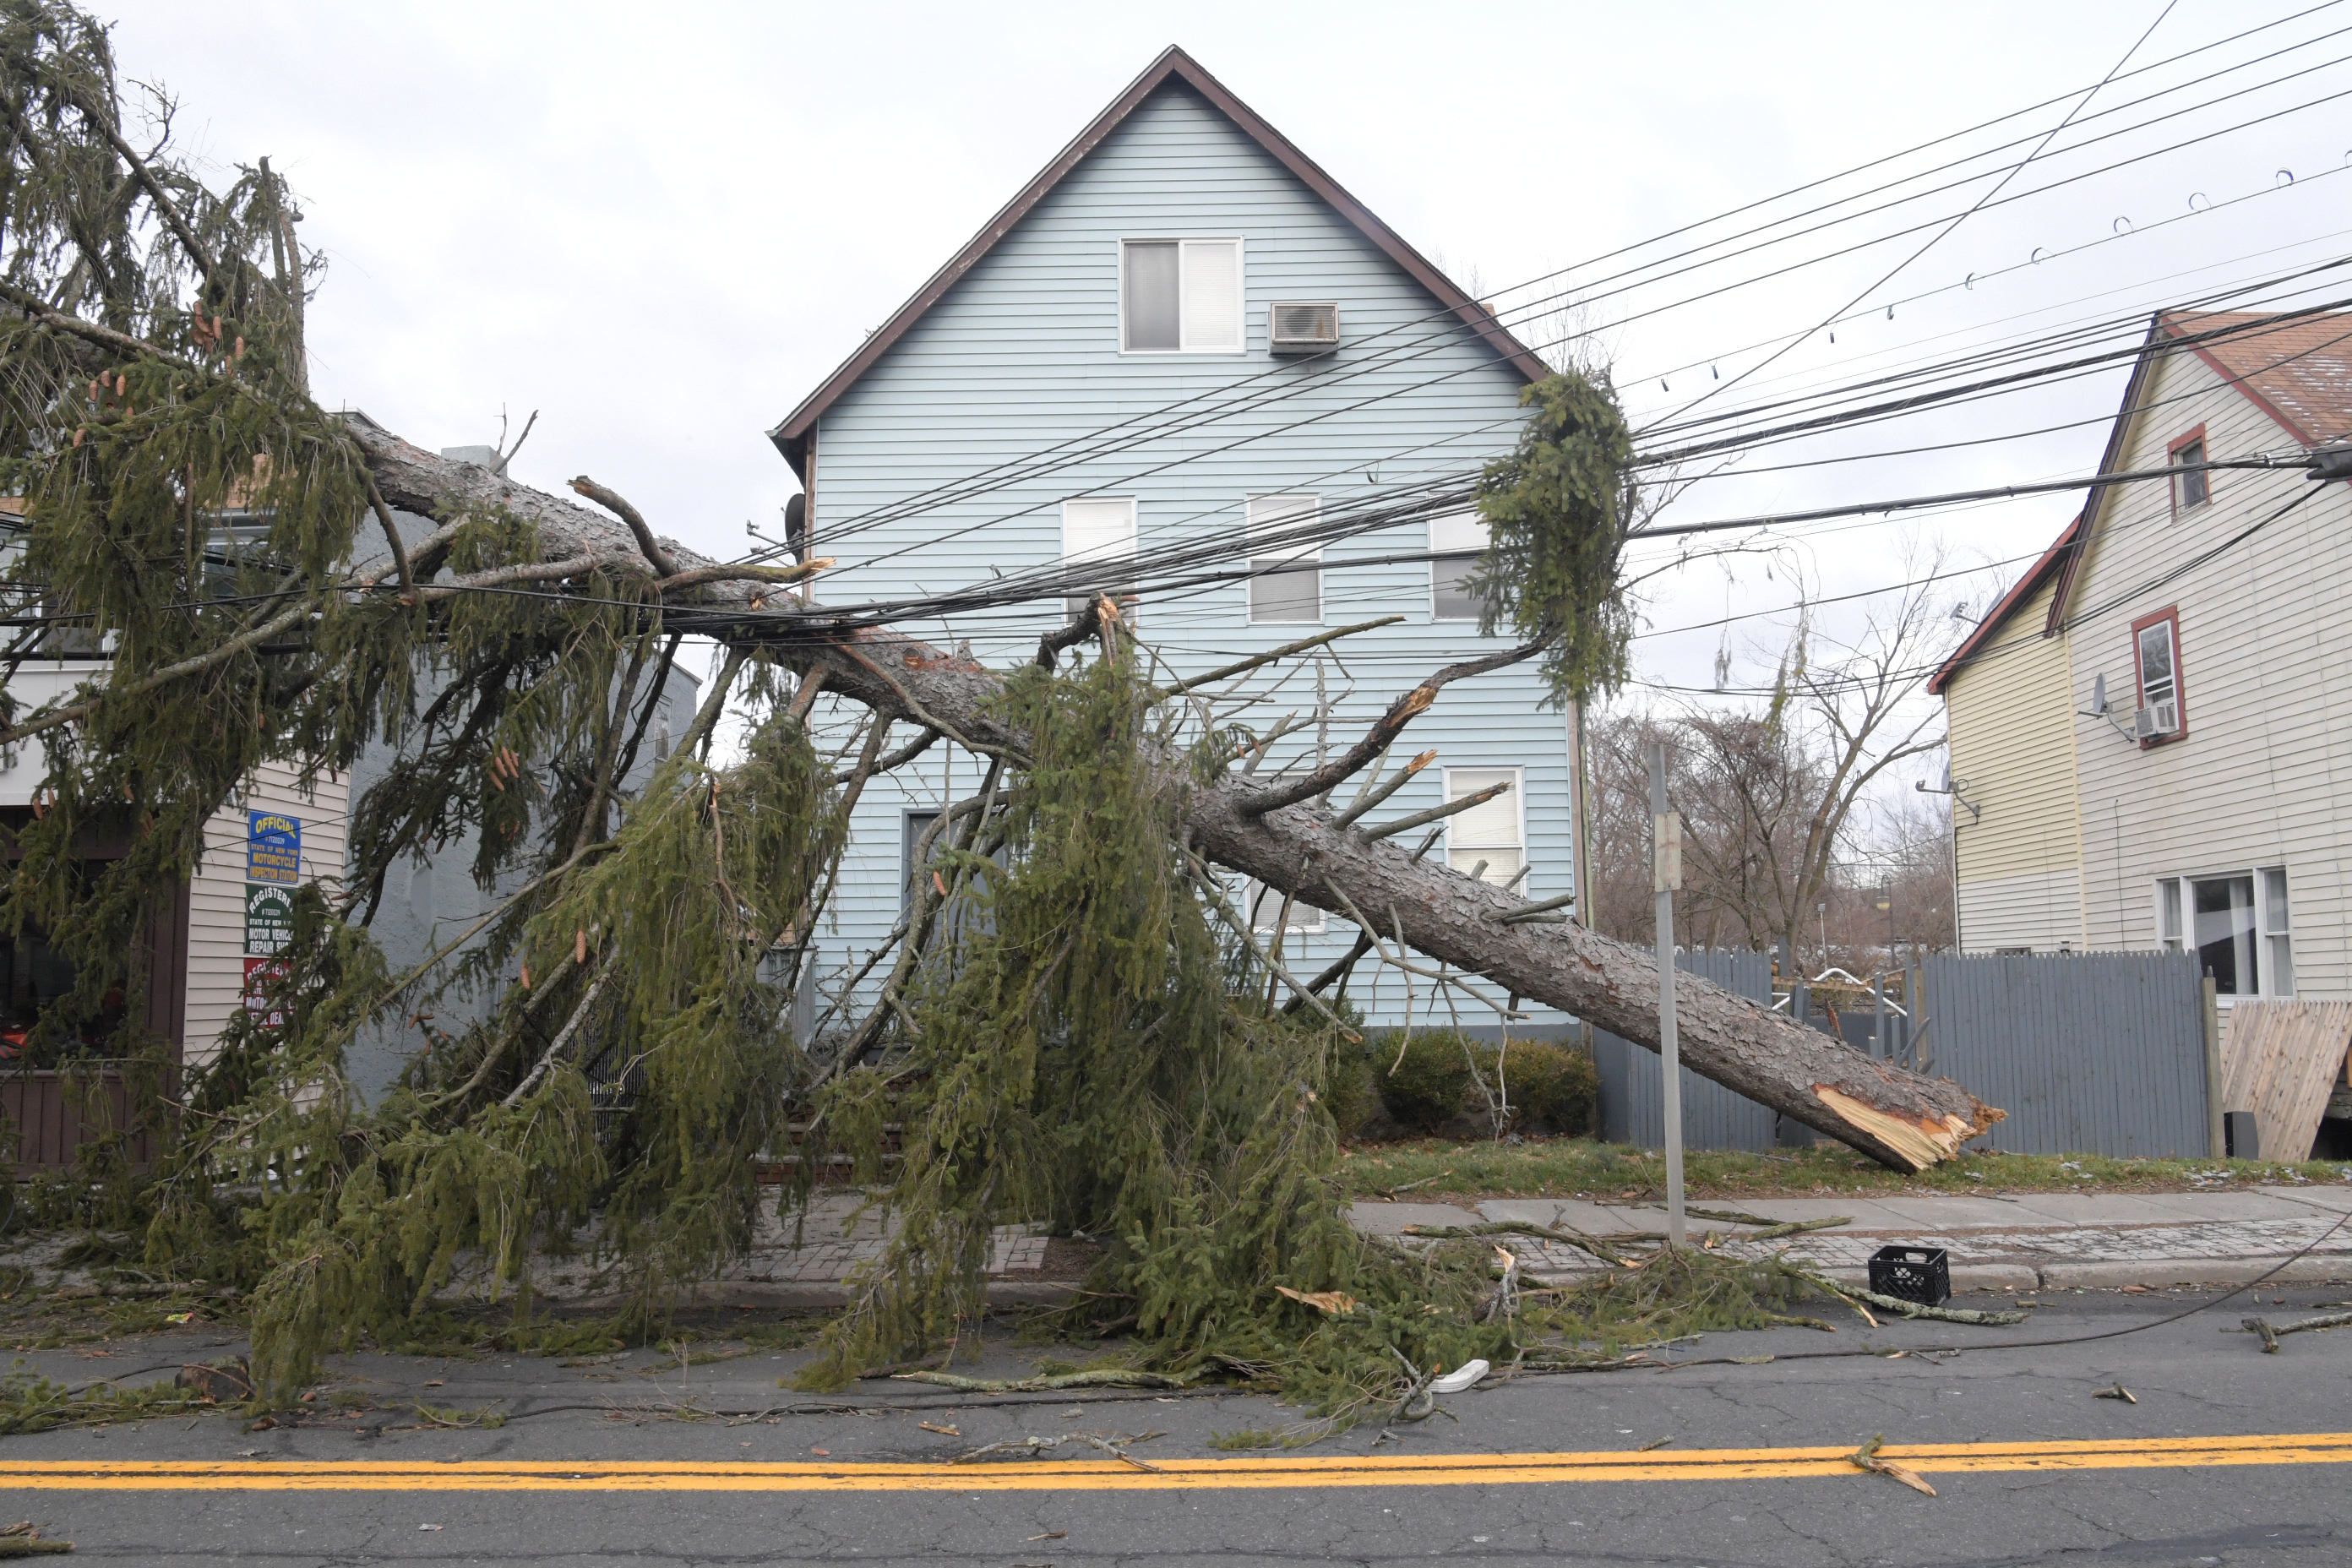 A evergreen tree has fallen on wires, as part of the damage of Winter Storm Riley